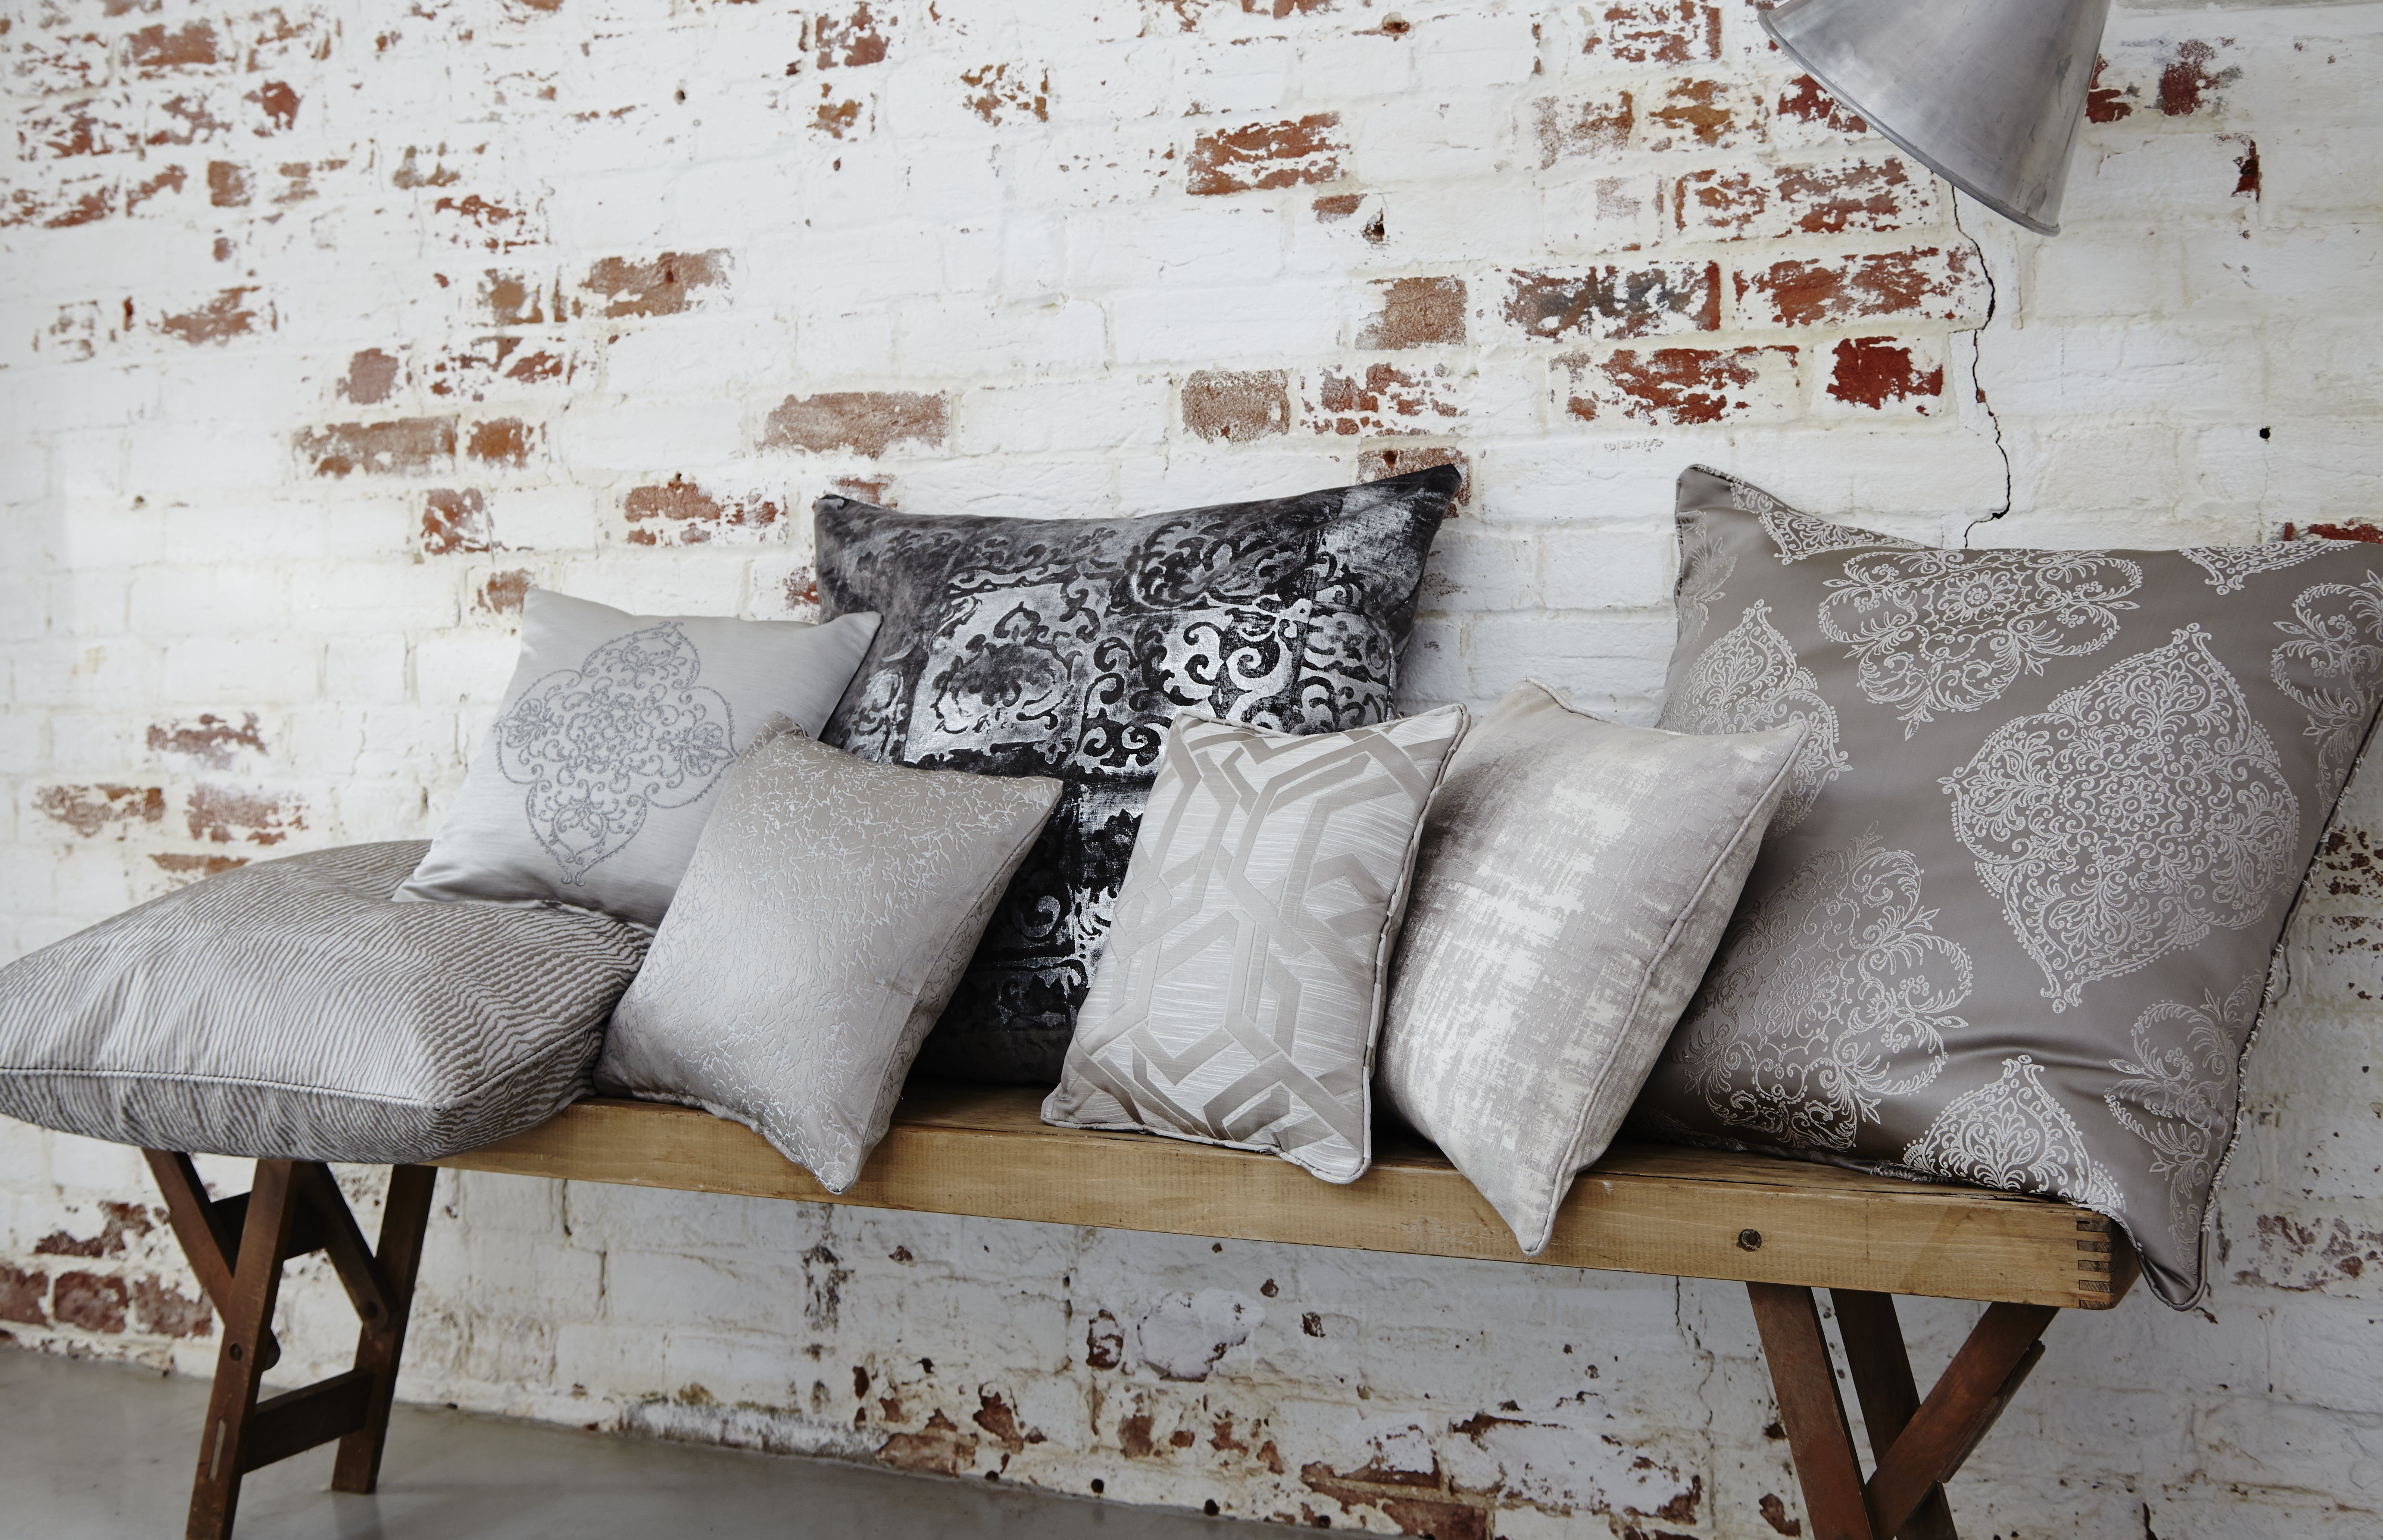 Get the look by pairing our fabrics with simple, rustic